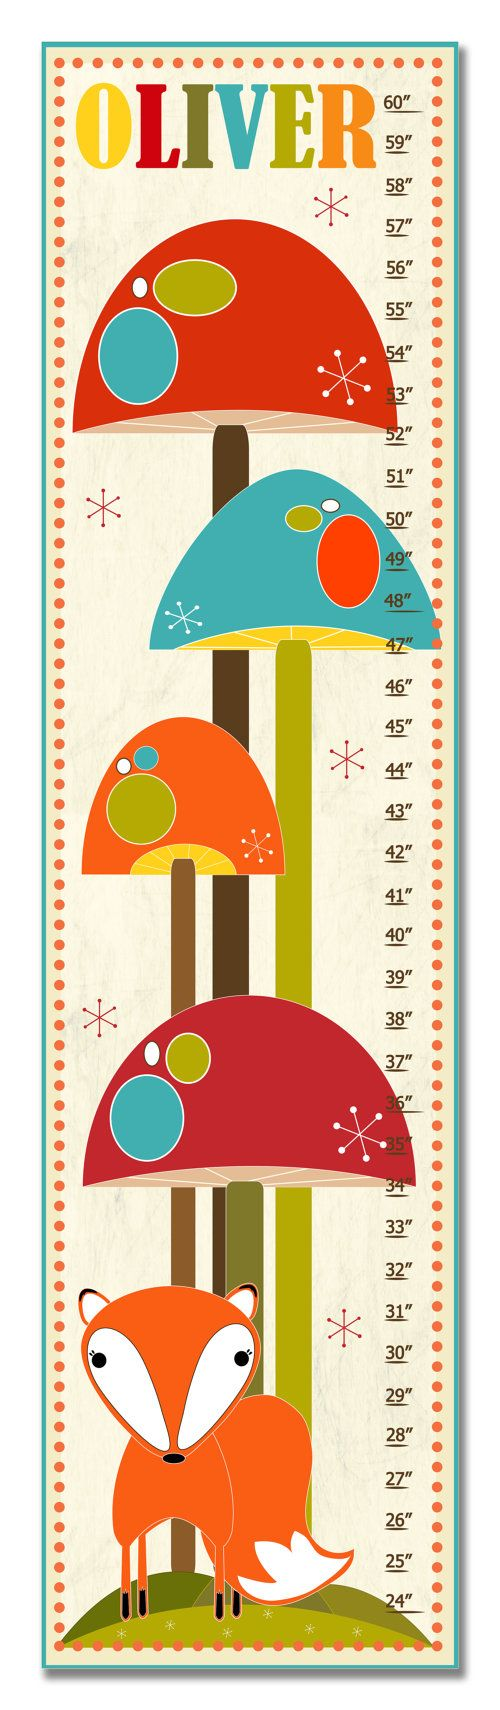 40 best growth charts images on pinterest for kids growth charts kids growth chart ruler measure childrens wall art fox in mushroom forest may be personalized also available in metric geenschuldenfo Images